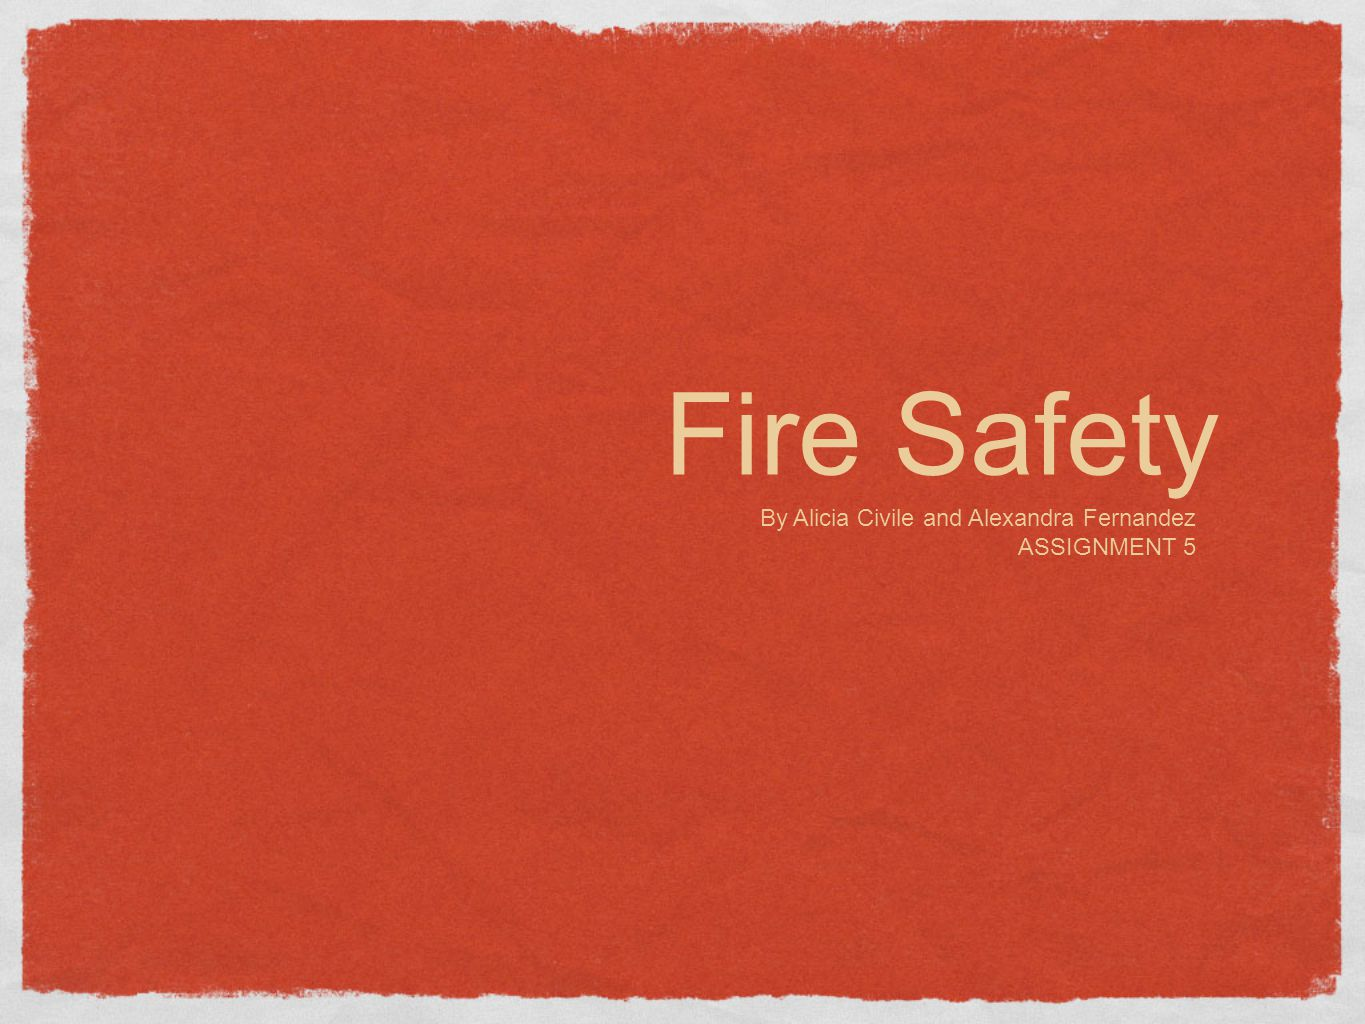 Fire Safety By Alicia Civile and Alexandra Fernandez ASSIGNMENT 5